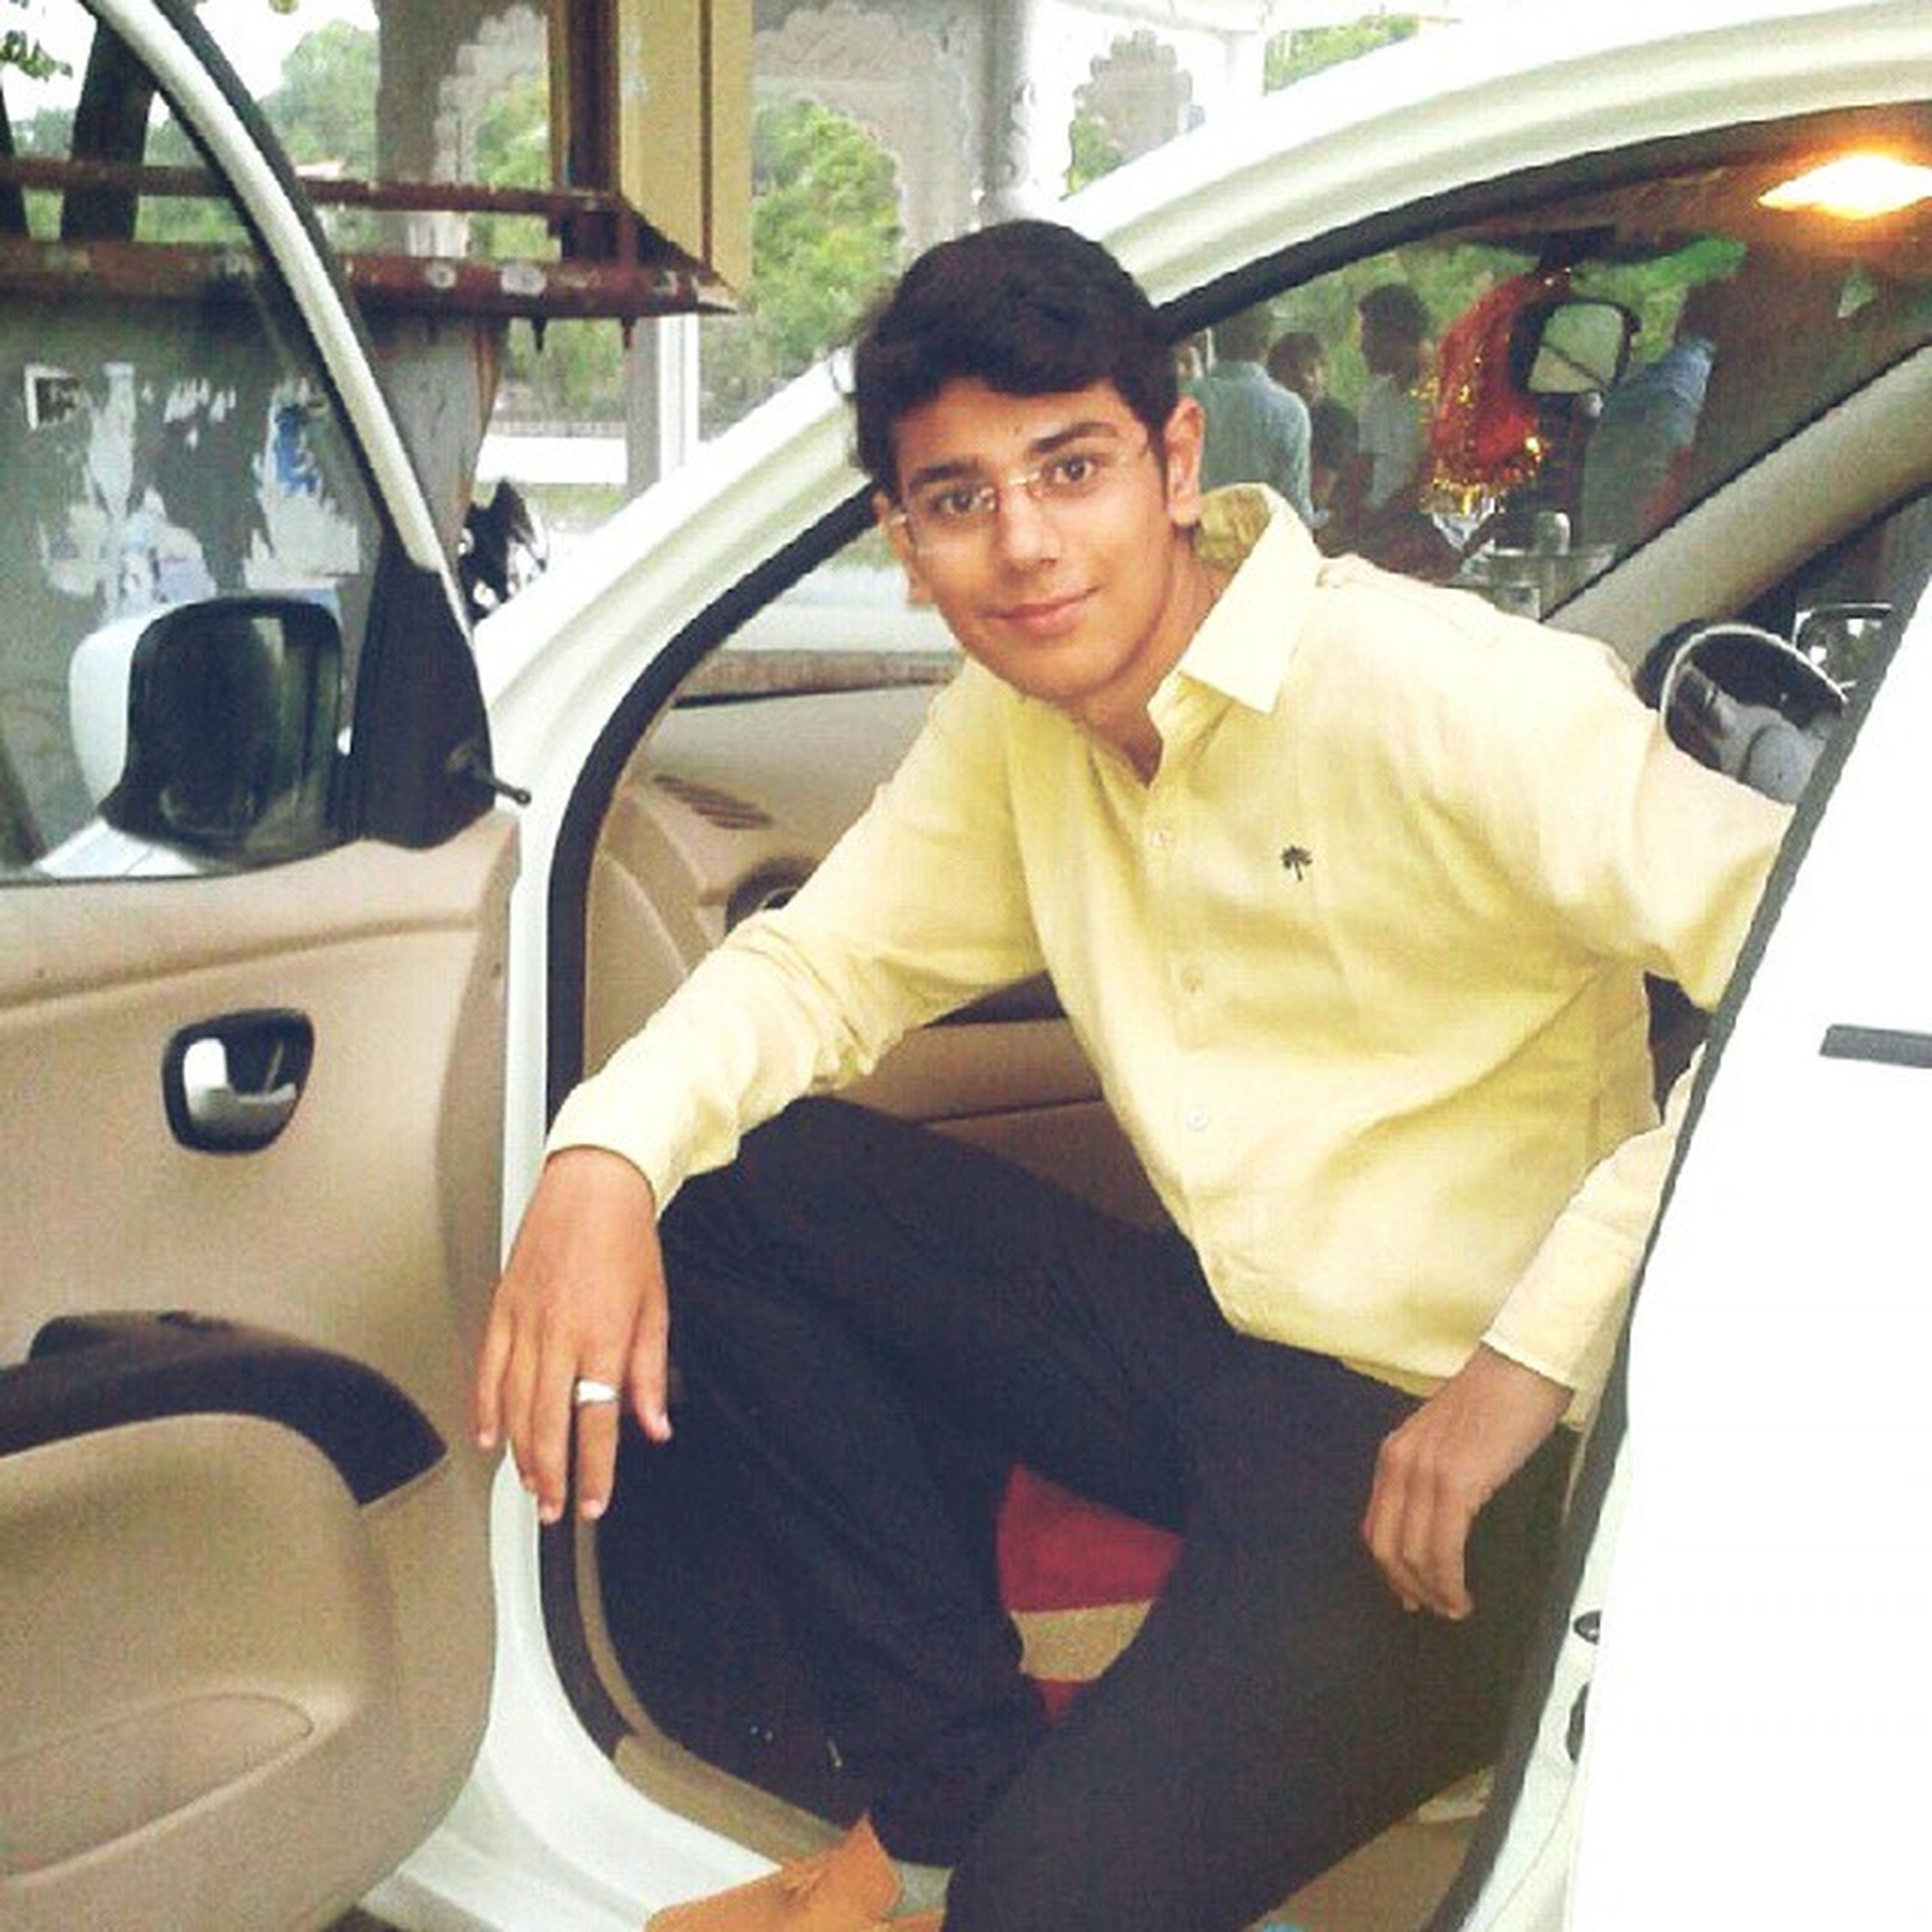 young adult, person, lifestyles, transportation, casual clothing, portrait, mode of transport, looking at camera, leisure activity, young men, front view, sitting, land vehicle, sunglasses, smiling, indoors, car, three quarter length